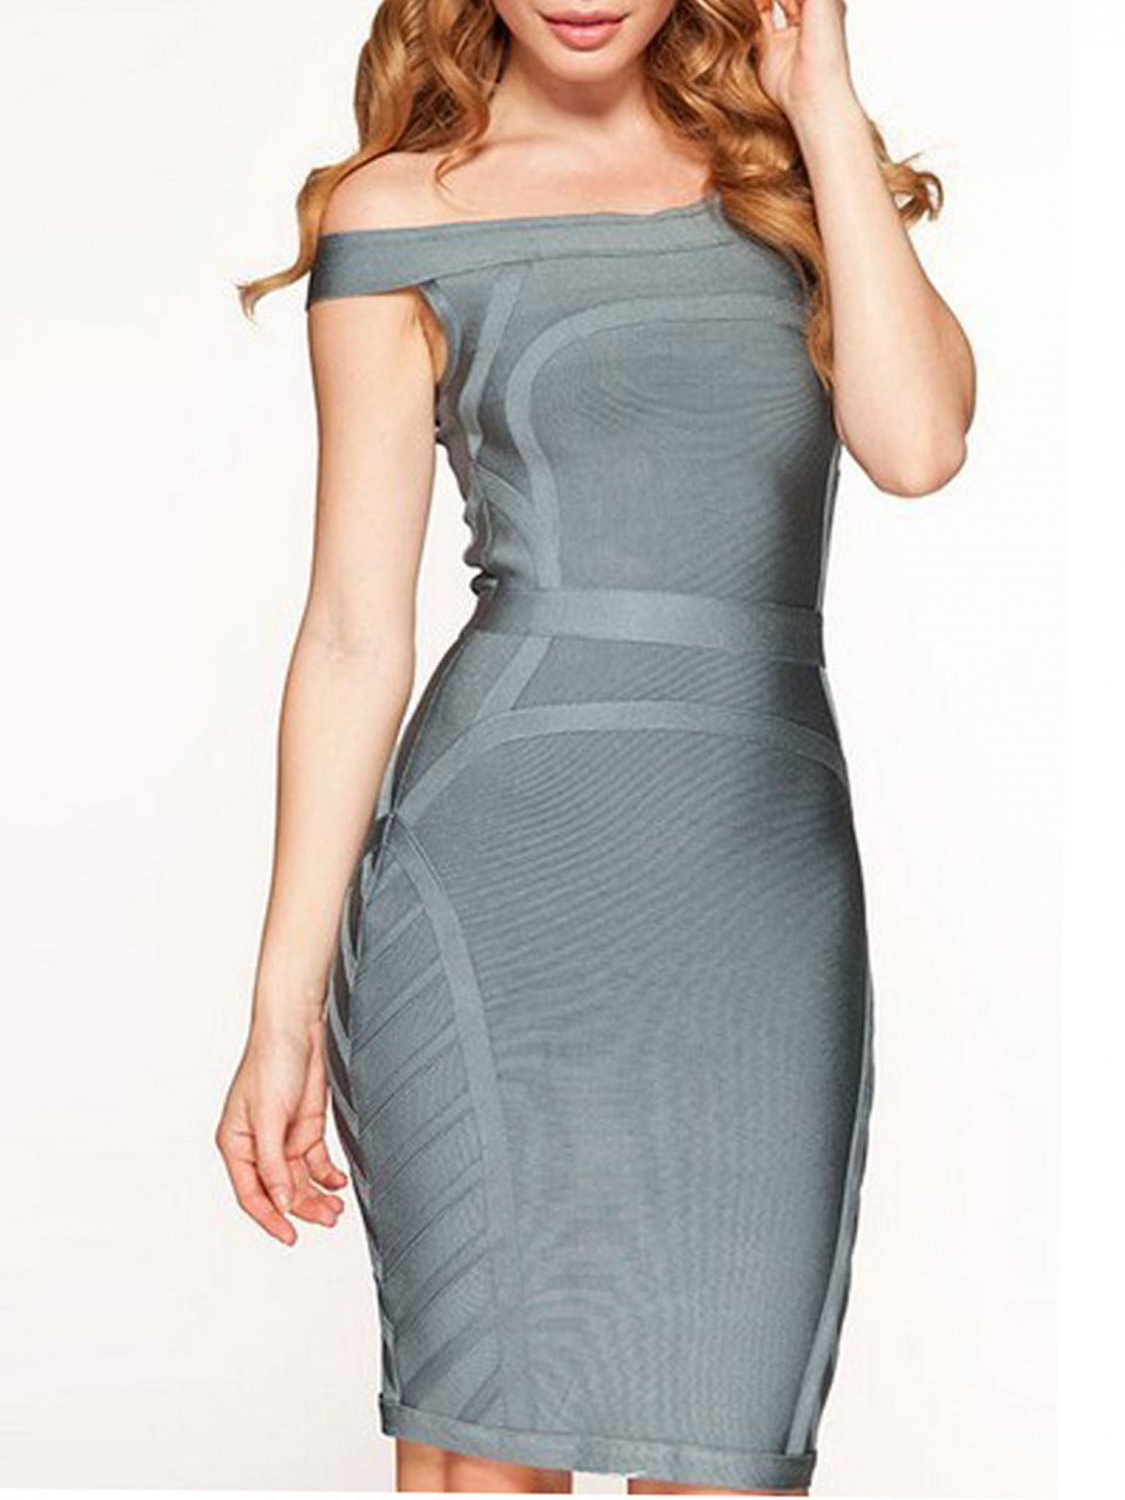 Cloverl Frankie Gray off the shoulder Bandage Dress  Free Global Shipping